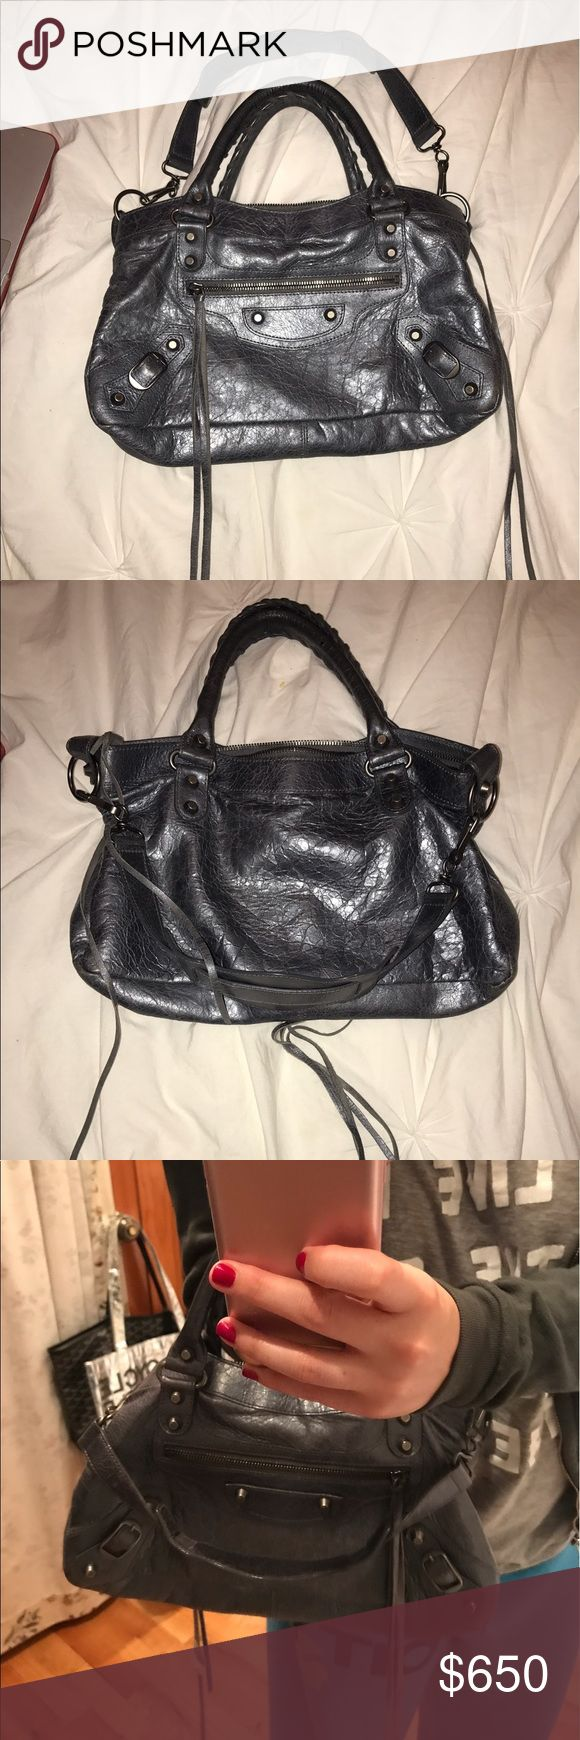 Balenciaga First Small Leather Shoulder Bag First Small Leather Shoulder Bag in metallic grey cracked leather with silver hardware. Features a removable shoulder strap. Measures 13in Wide X 7.75in High X 2in Deep. Balenciaga Bags Shoulder Bags